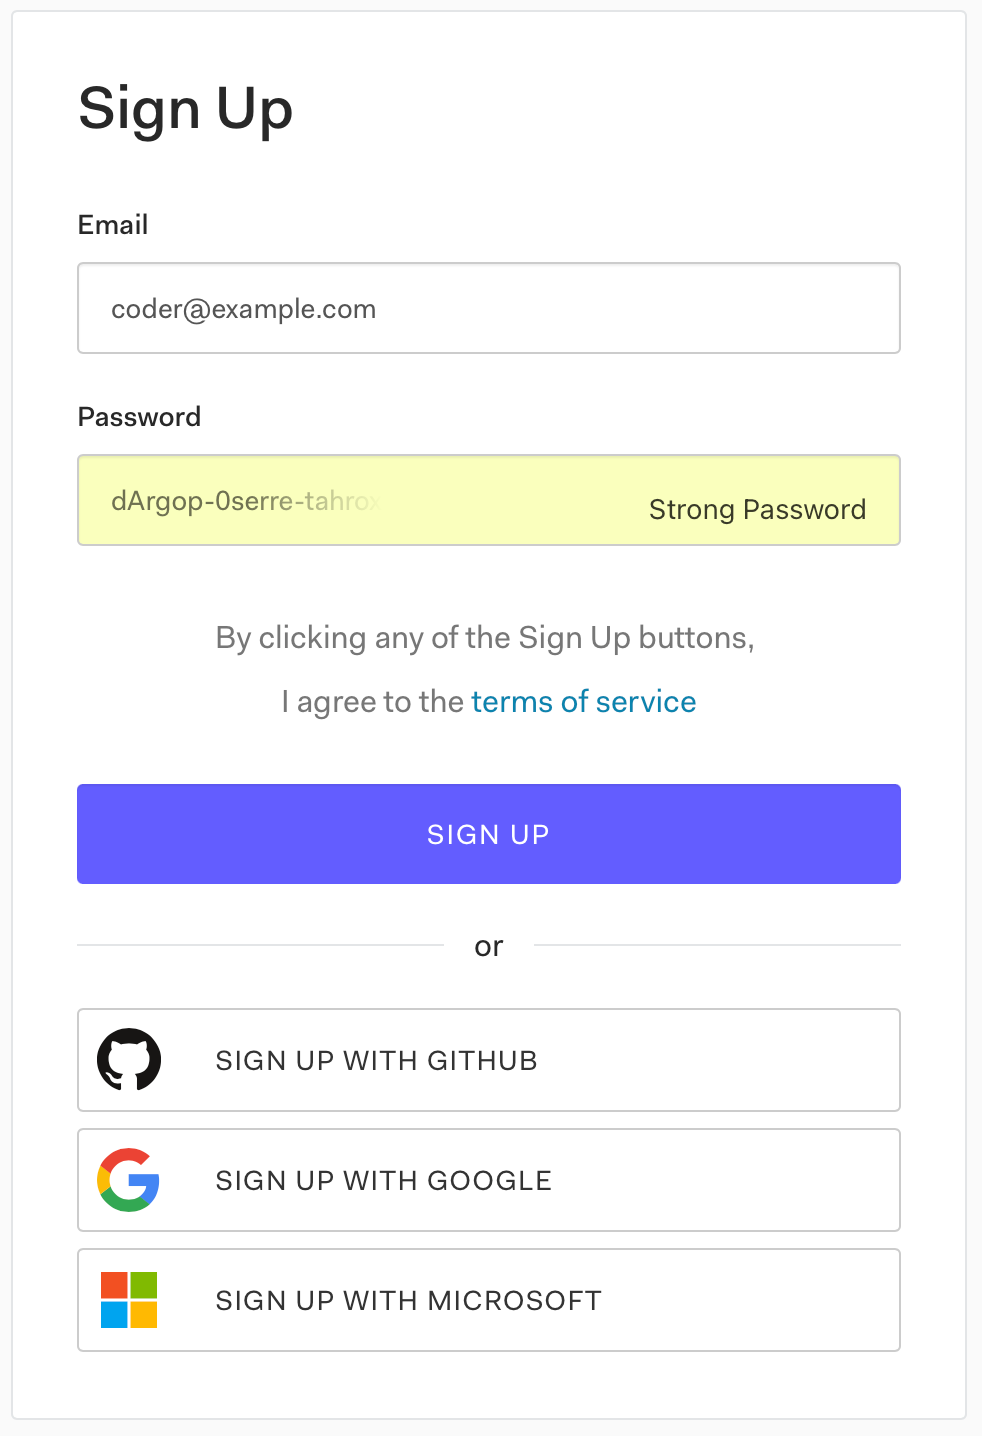 """Auth0's """"Sign Up"""" form, which has """"Email"""" and """"Password"""" fields, and links to sign up with a GitHub, Google, and Microsoft account."""